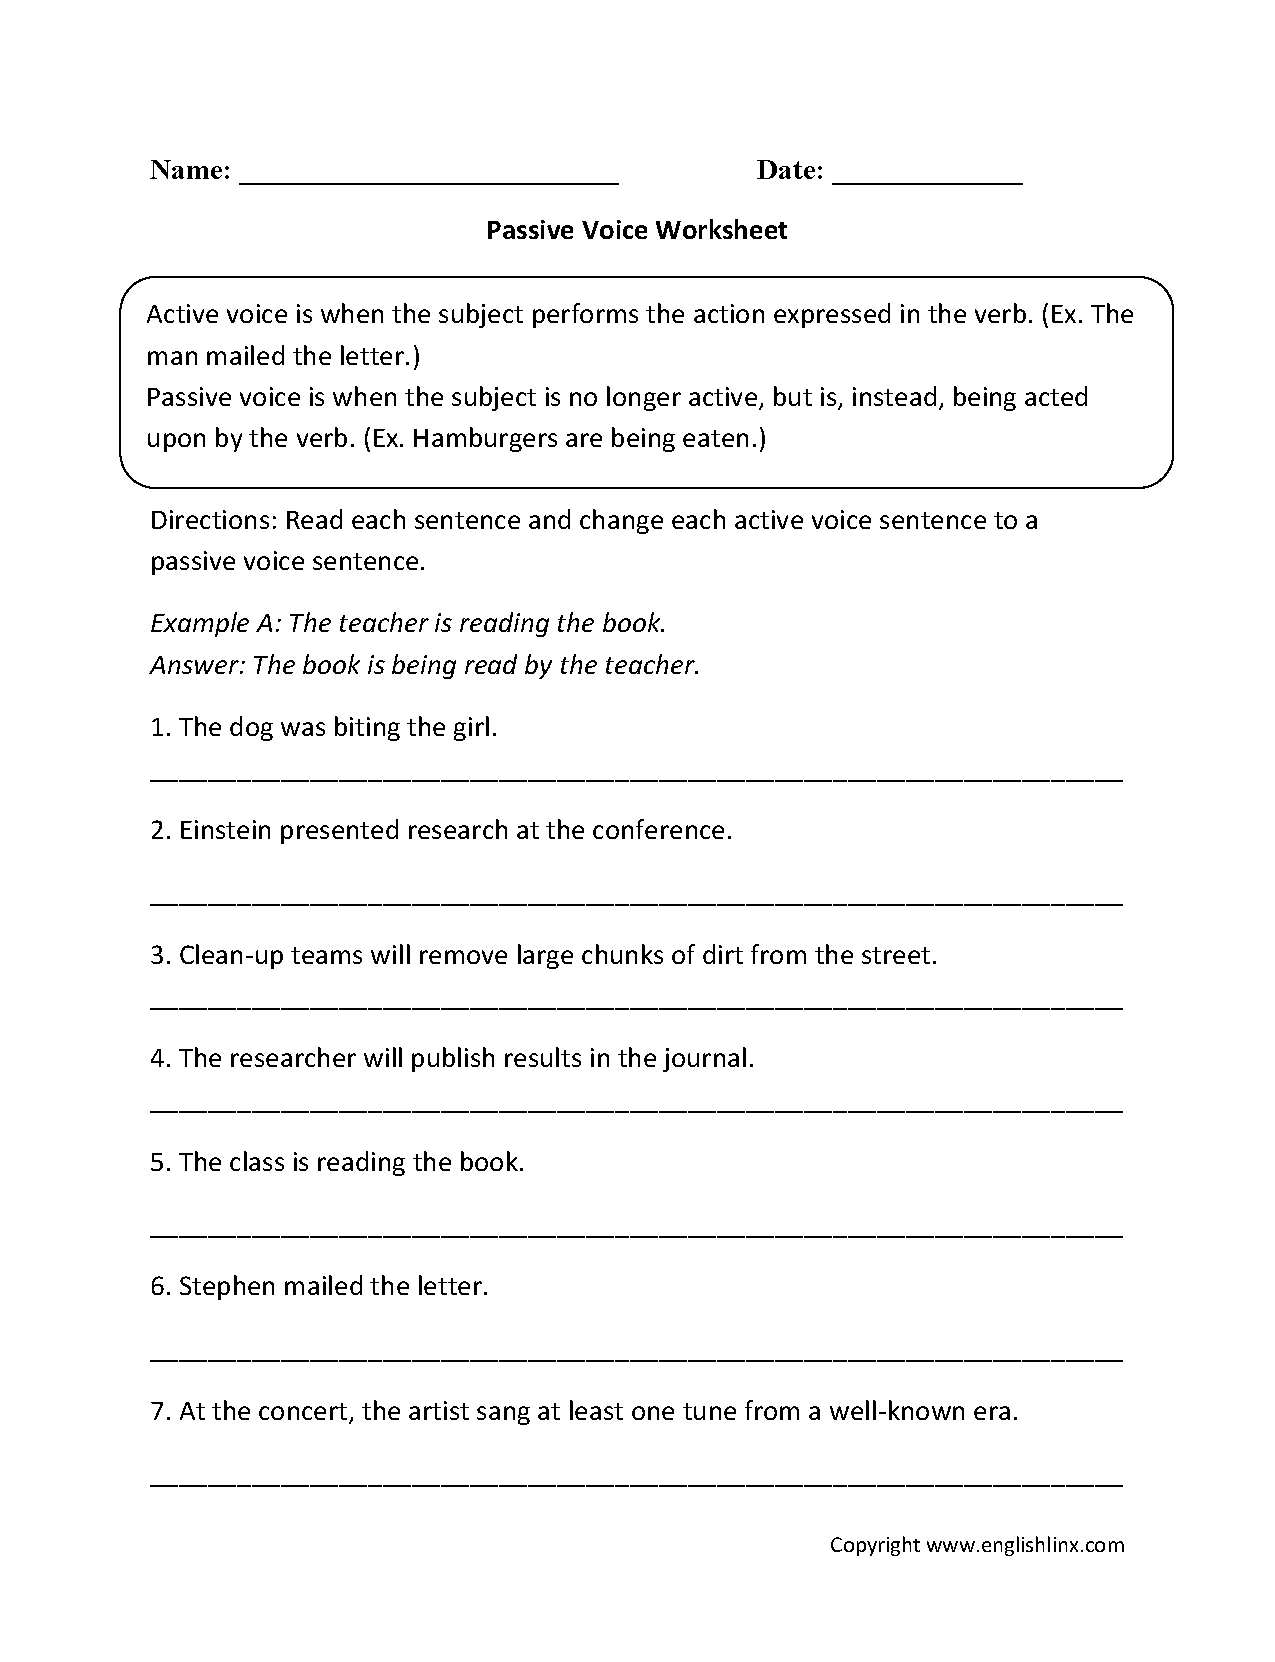 Passive Voice Worksheets